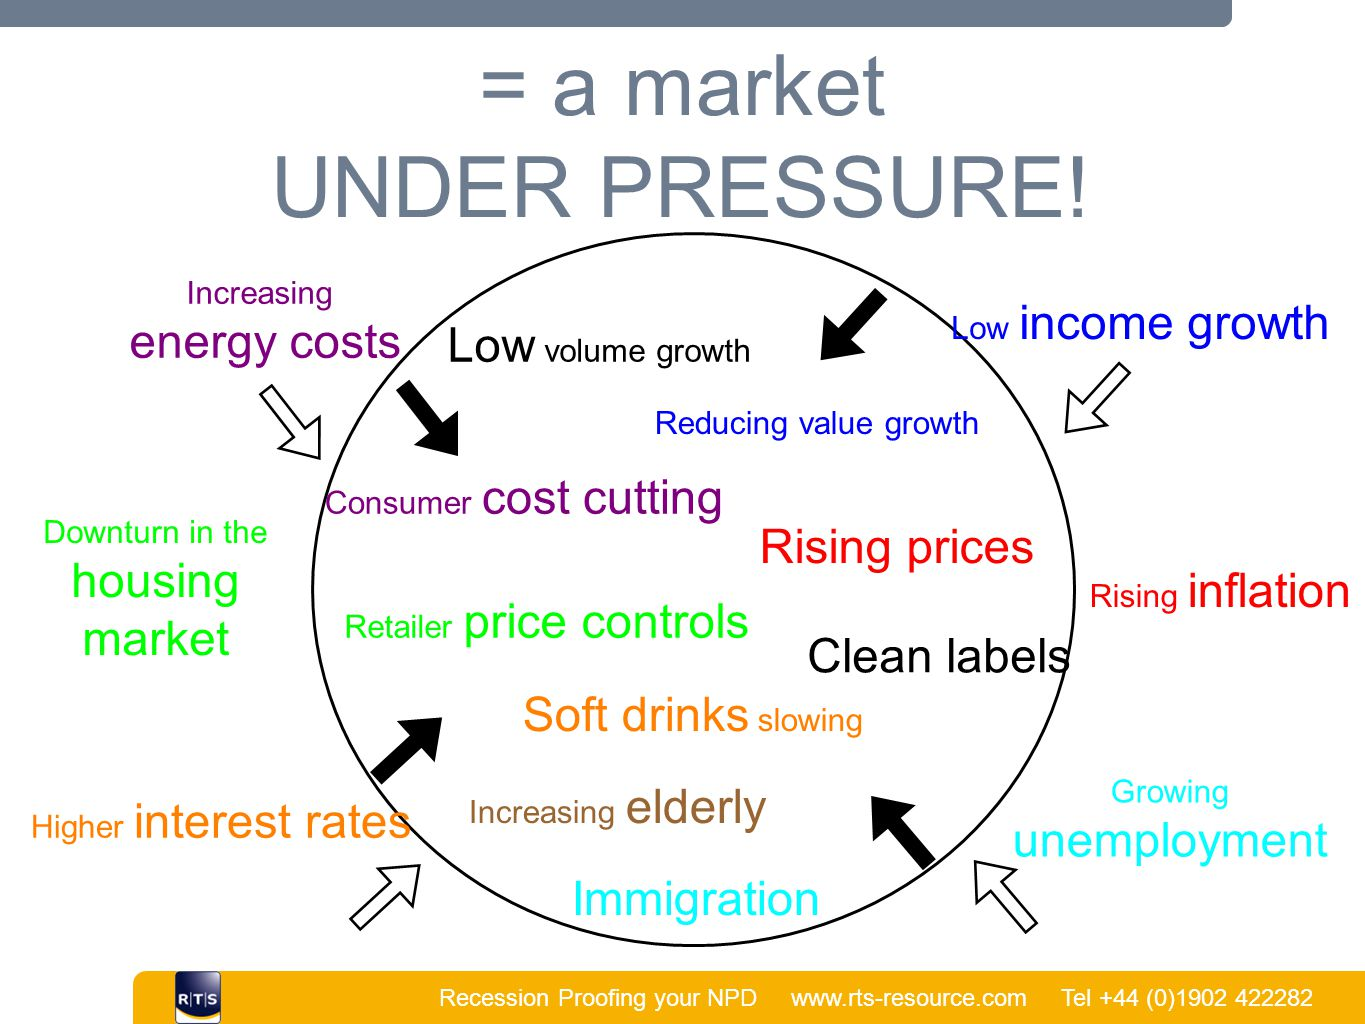 Recession Proofing your NPD www.rts-resource.com Tel +44 (0)1902 422282 | = a market UNDER PRESSURE.